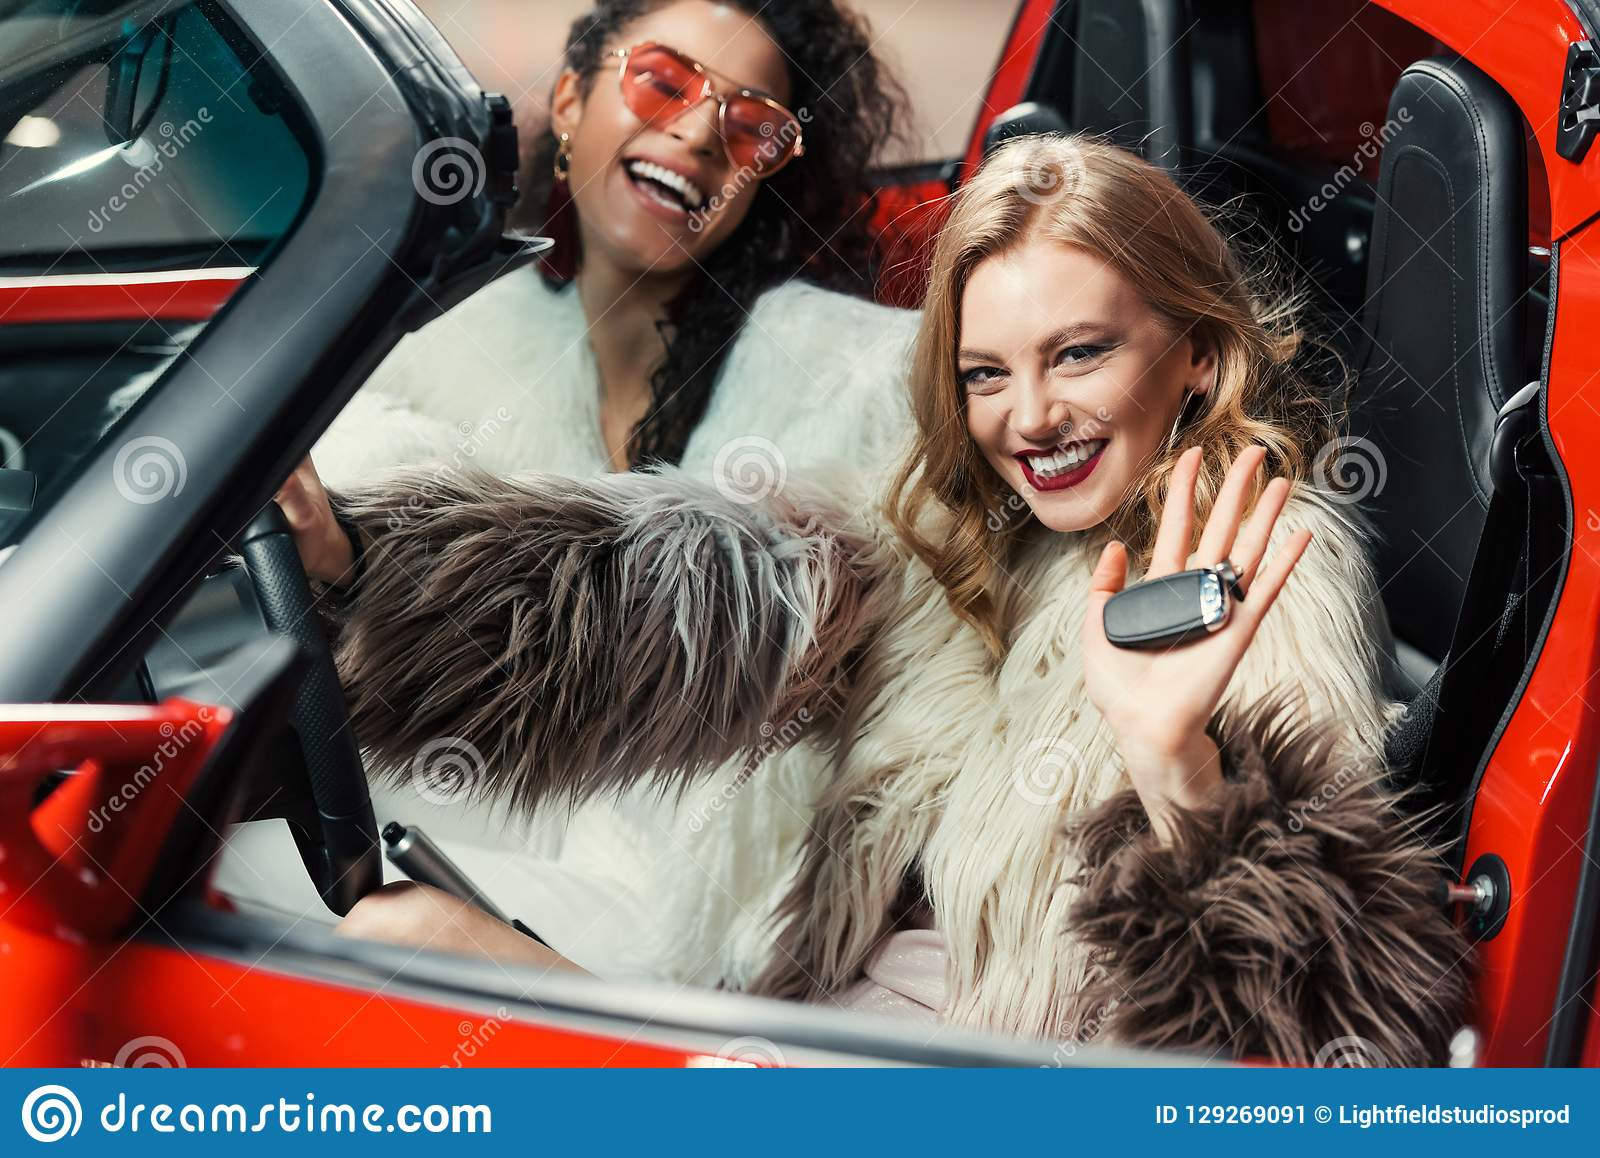 Happy Stylish Multiethnic Women In Fur Coats Holding Car Keys While Sitting In Luxury Red Stock Image Image Of Attractive Beautiful 129269091